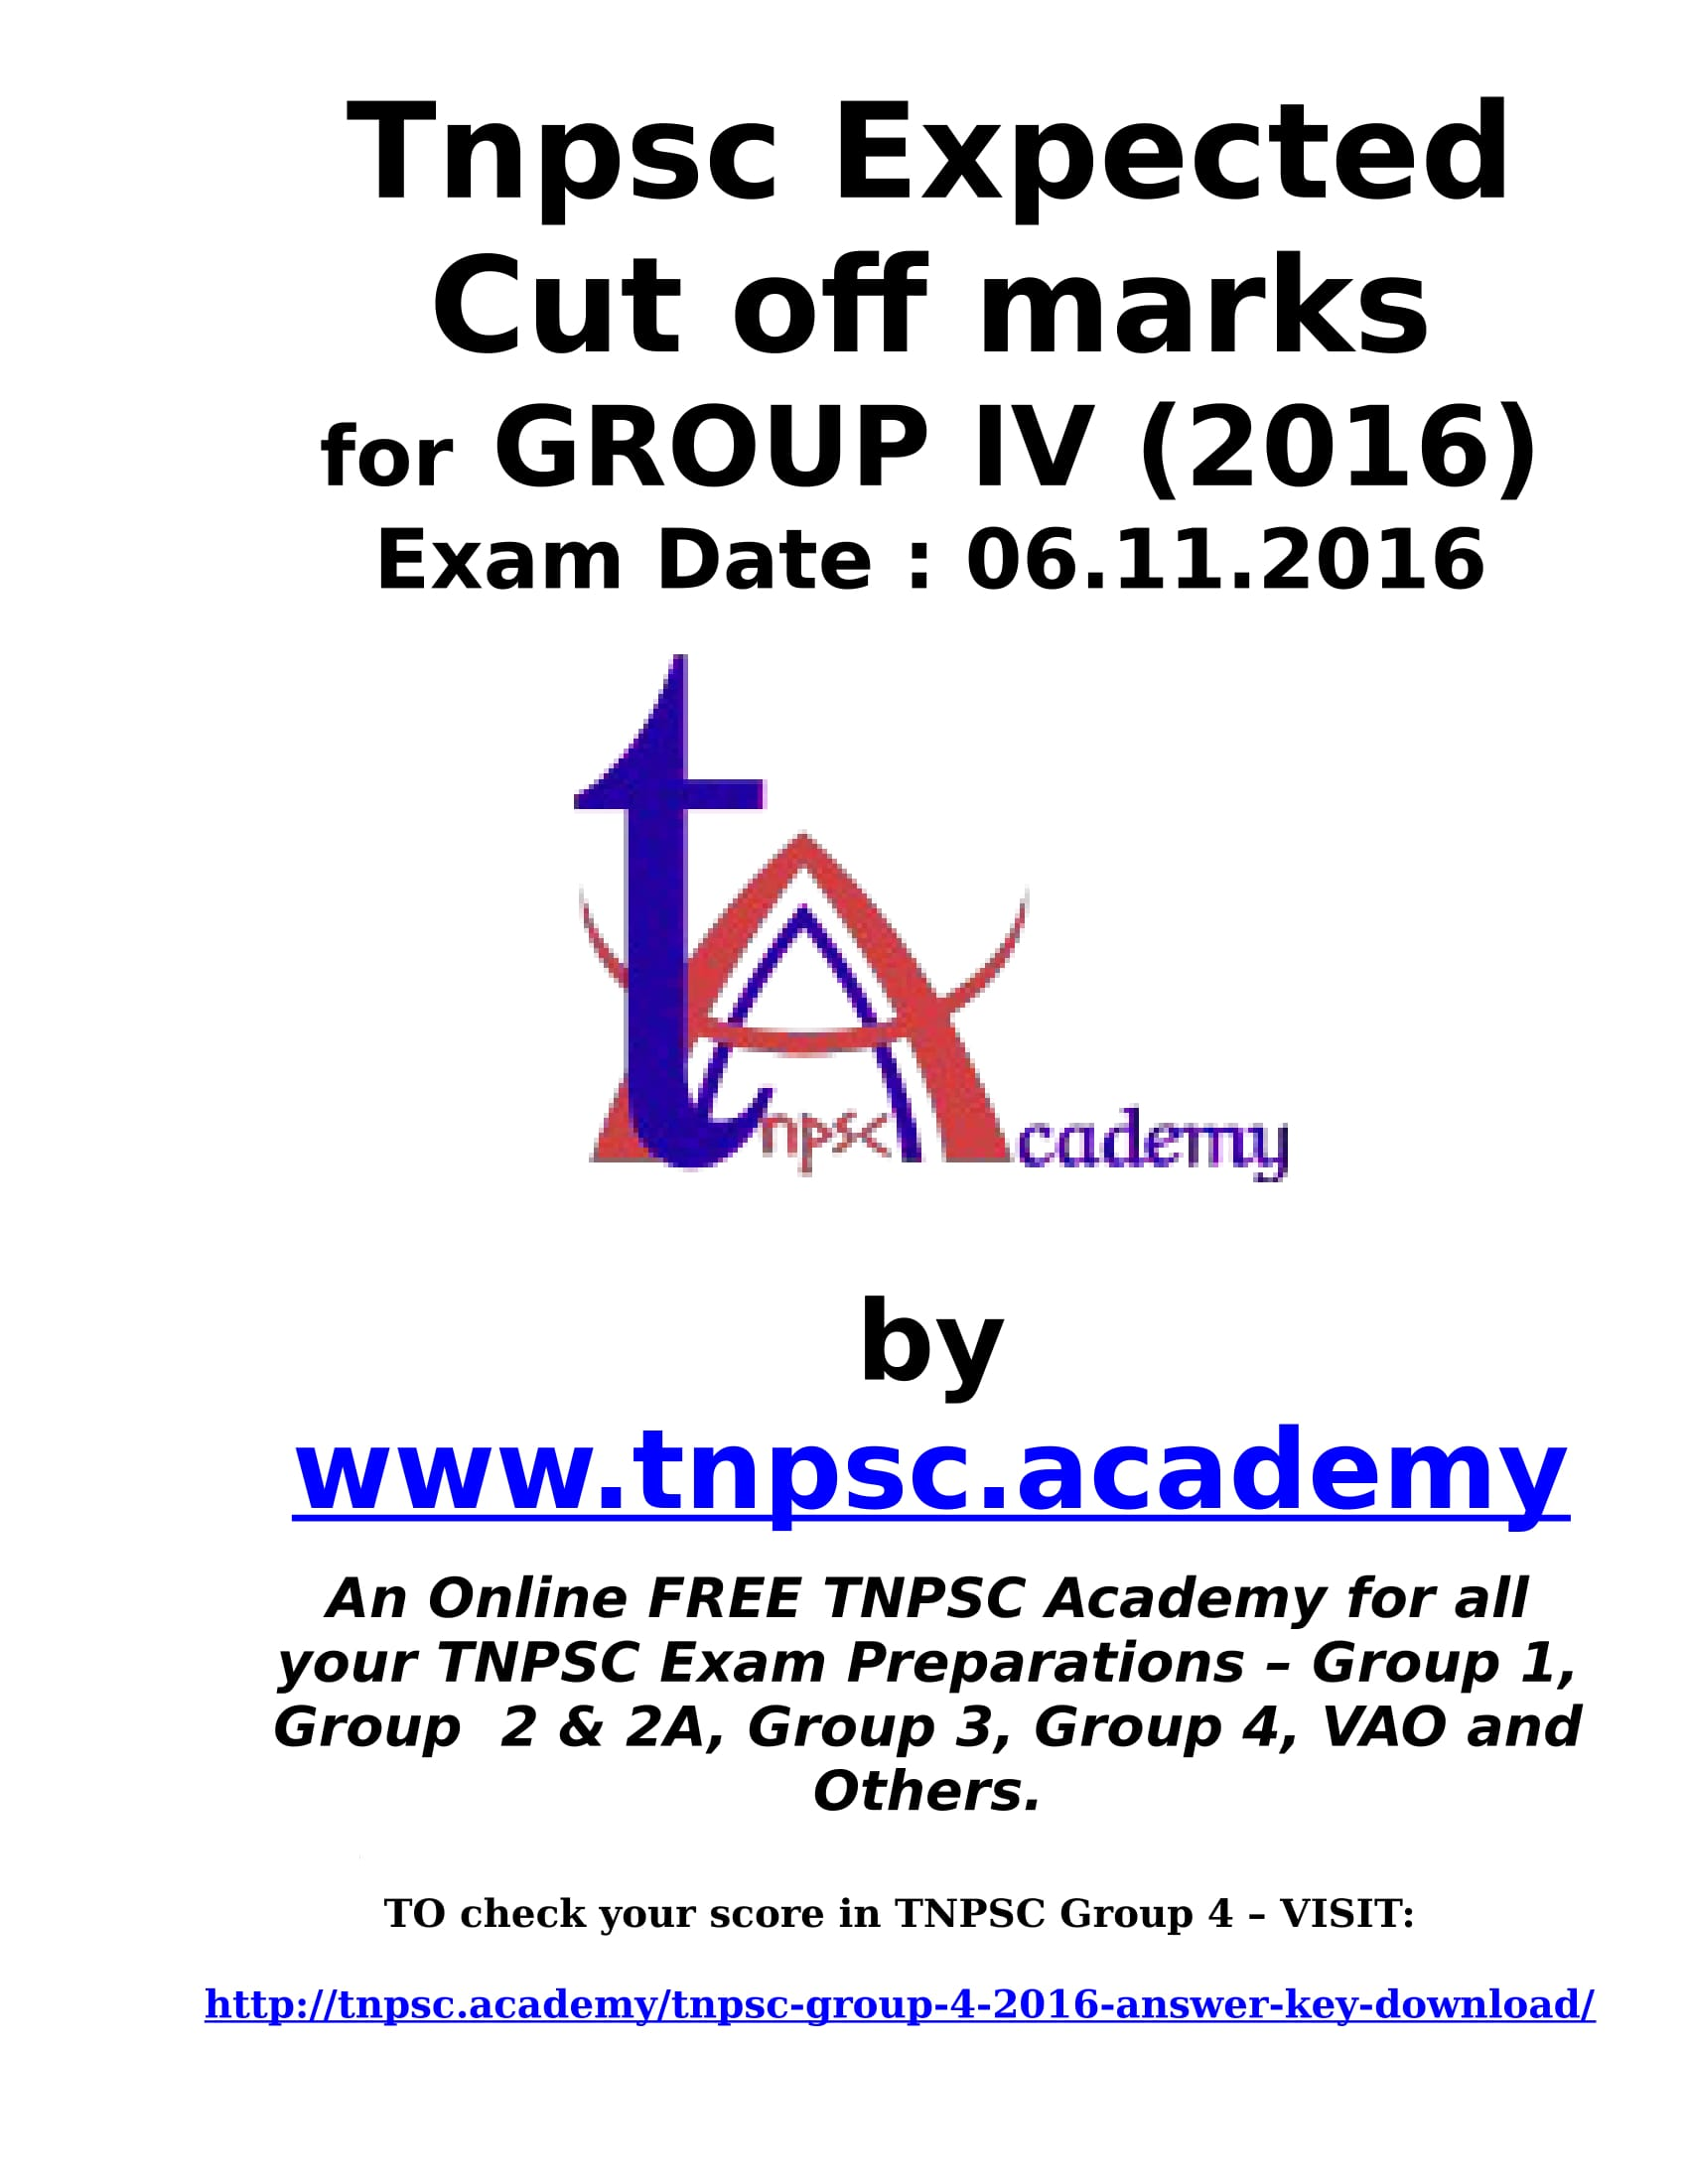 TNPSC Group 4 expected cut off marks 2016